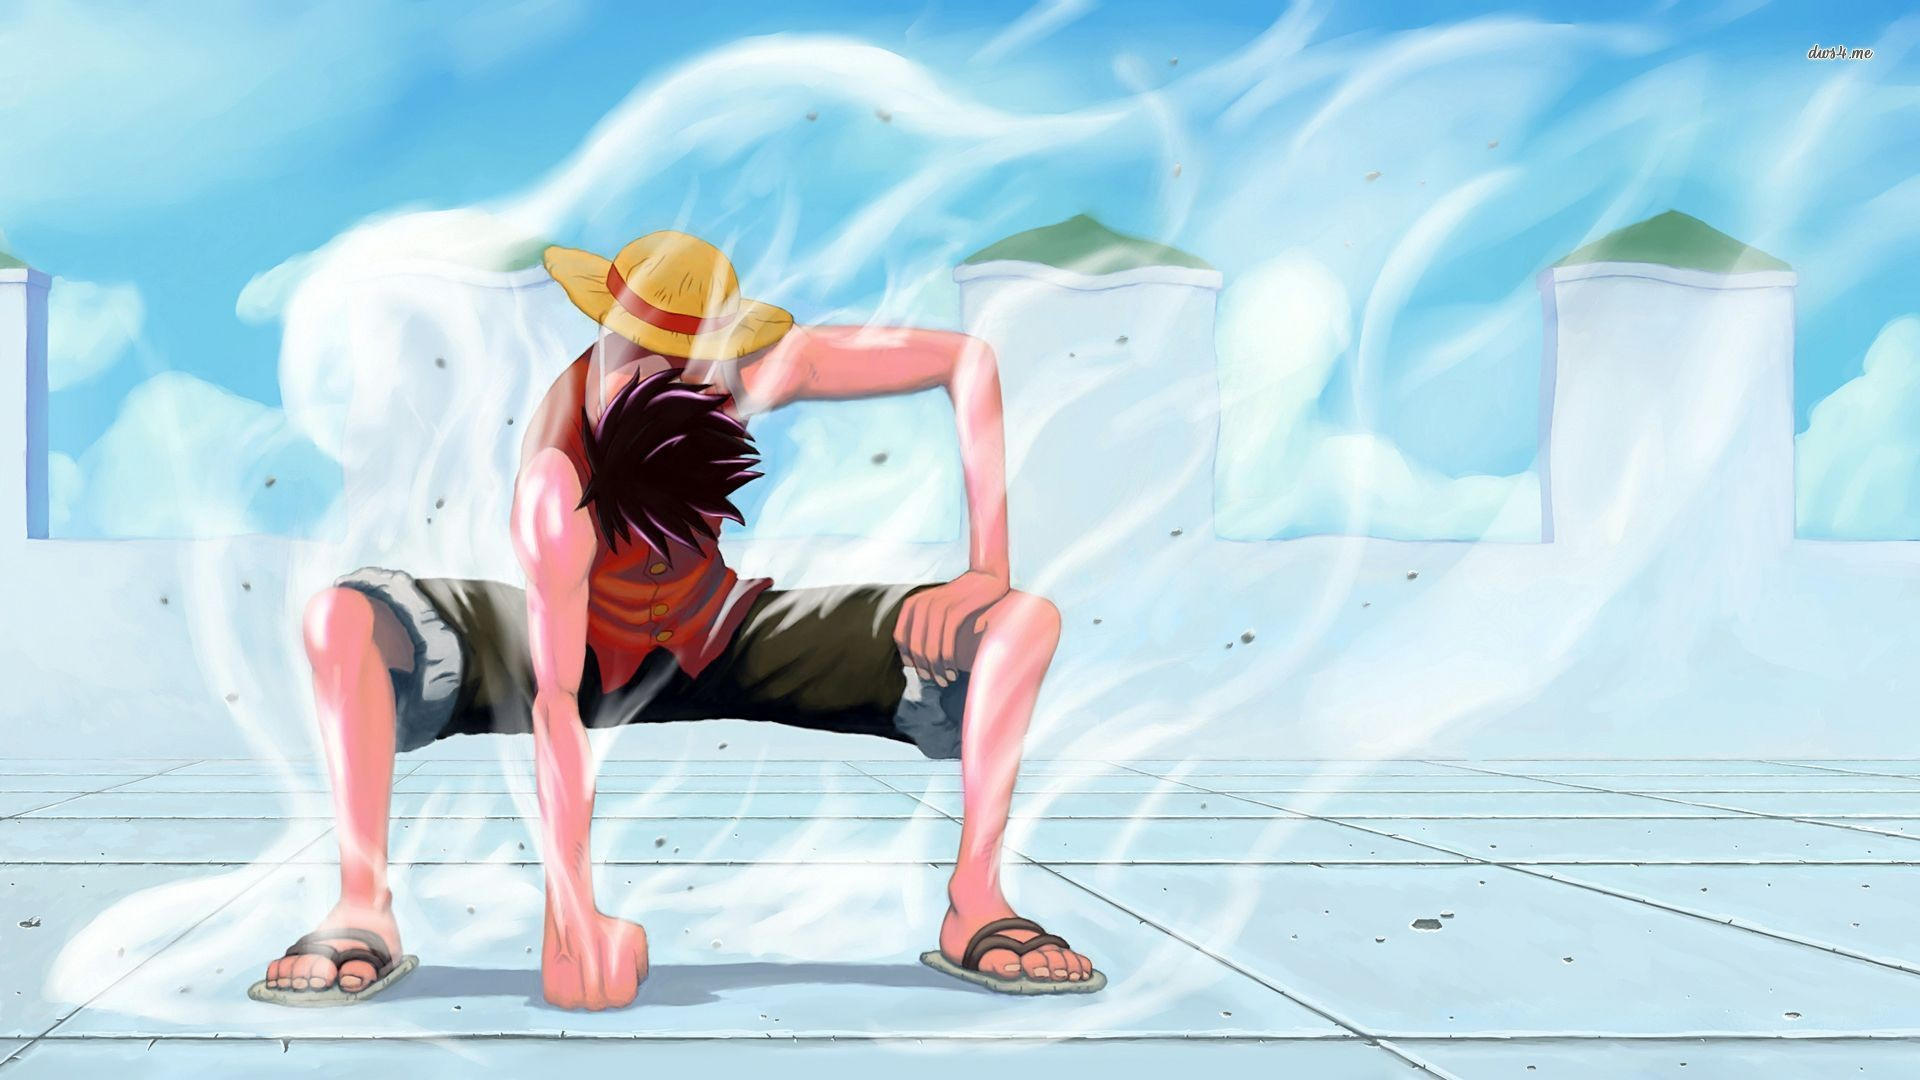 1920x1080 Download Luffy Monkey Wallpaper Anime HD Full Size